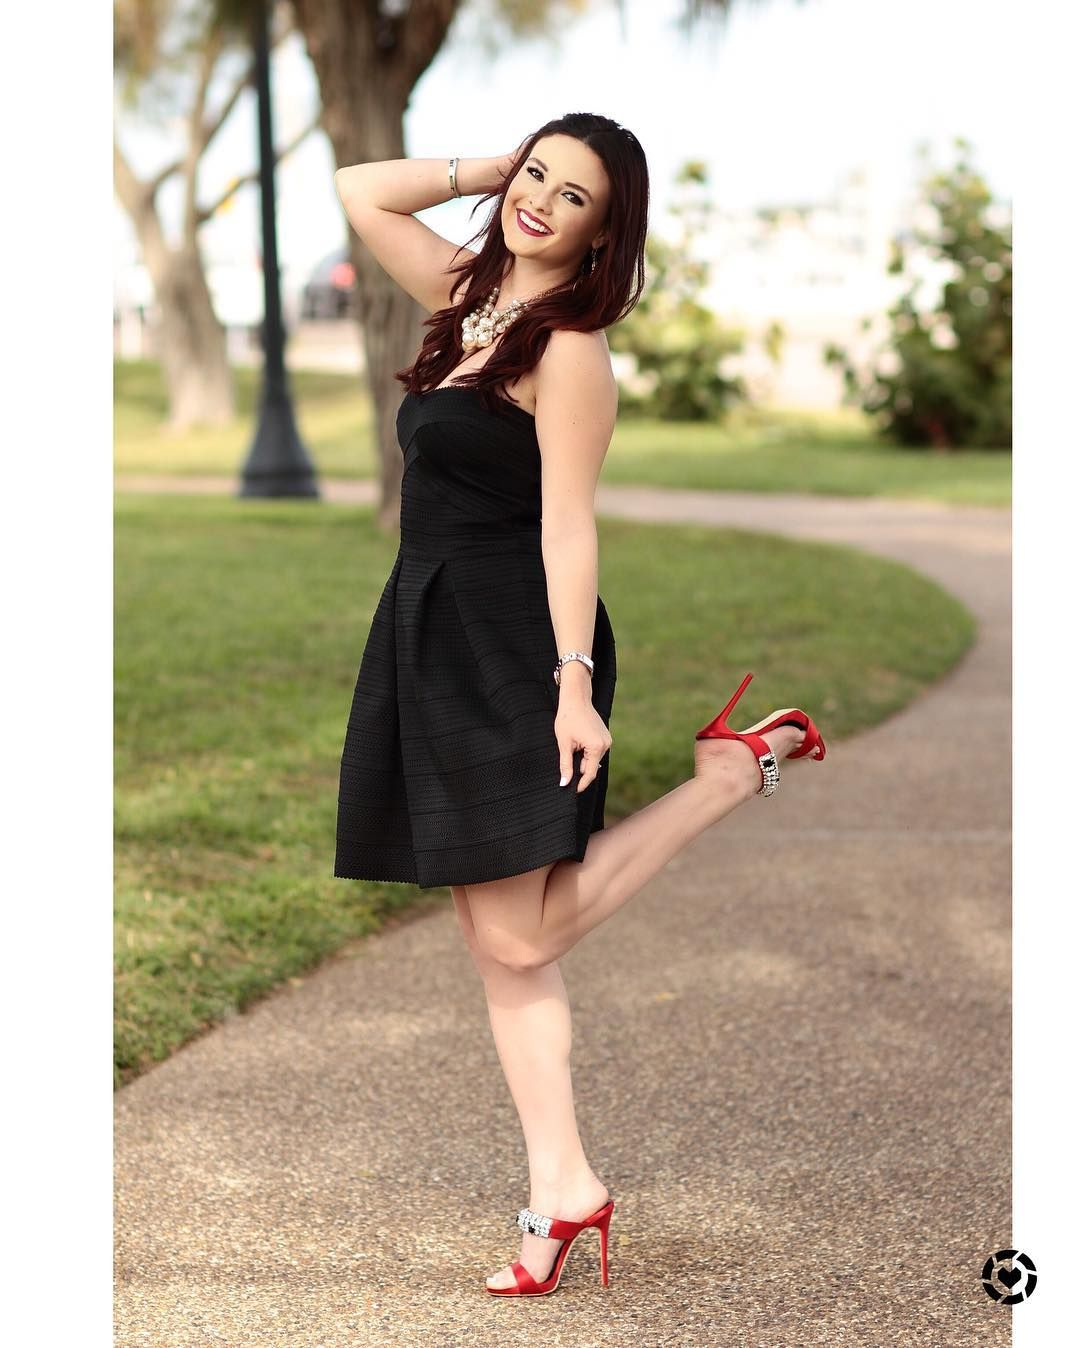 Little black dress lbd redshoes loveyourself fashion